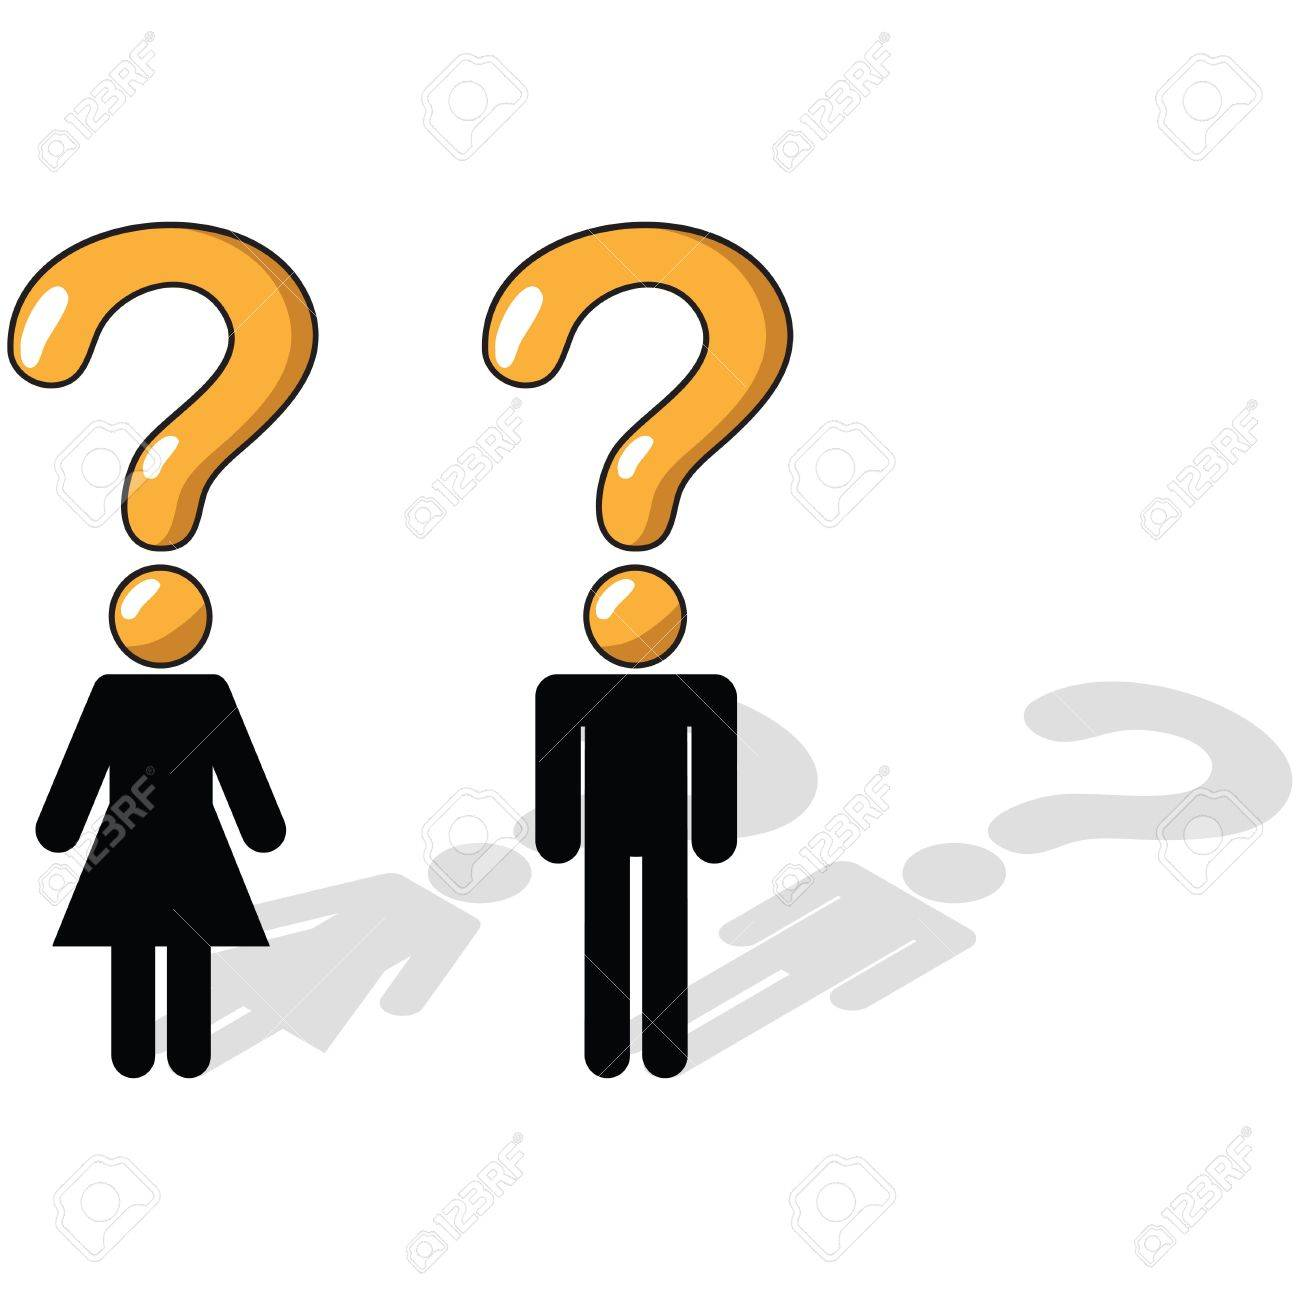 Business Concept - Questioning, uncertainty, unsure Stock Photo - 2734424